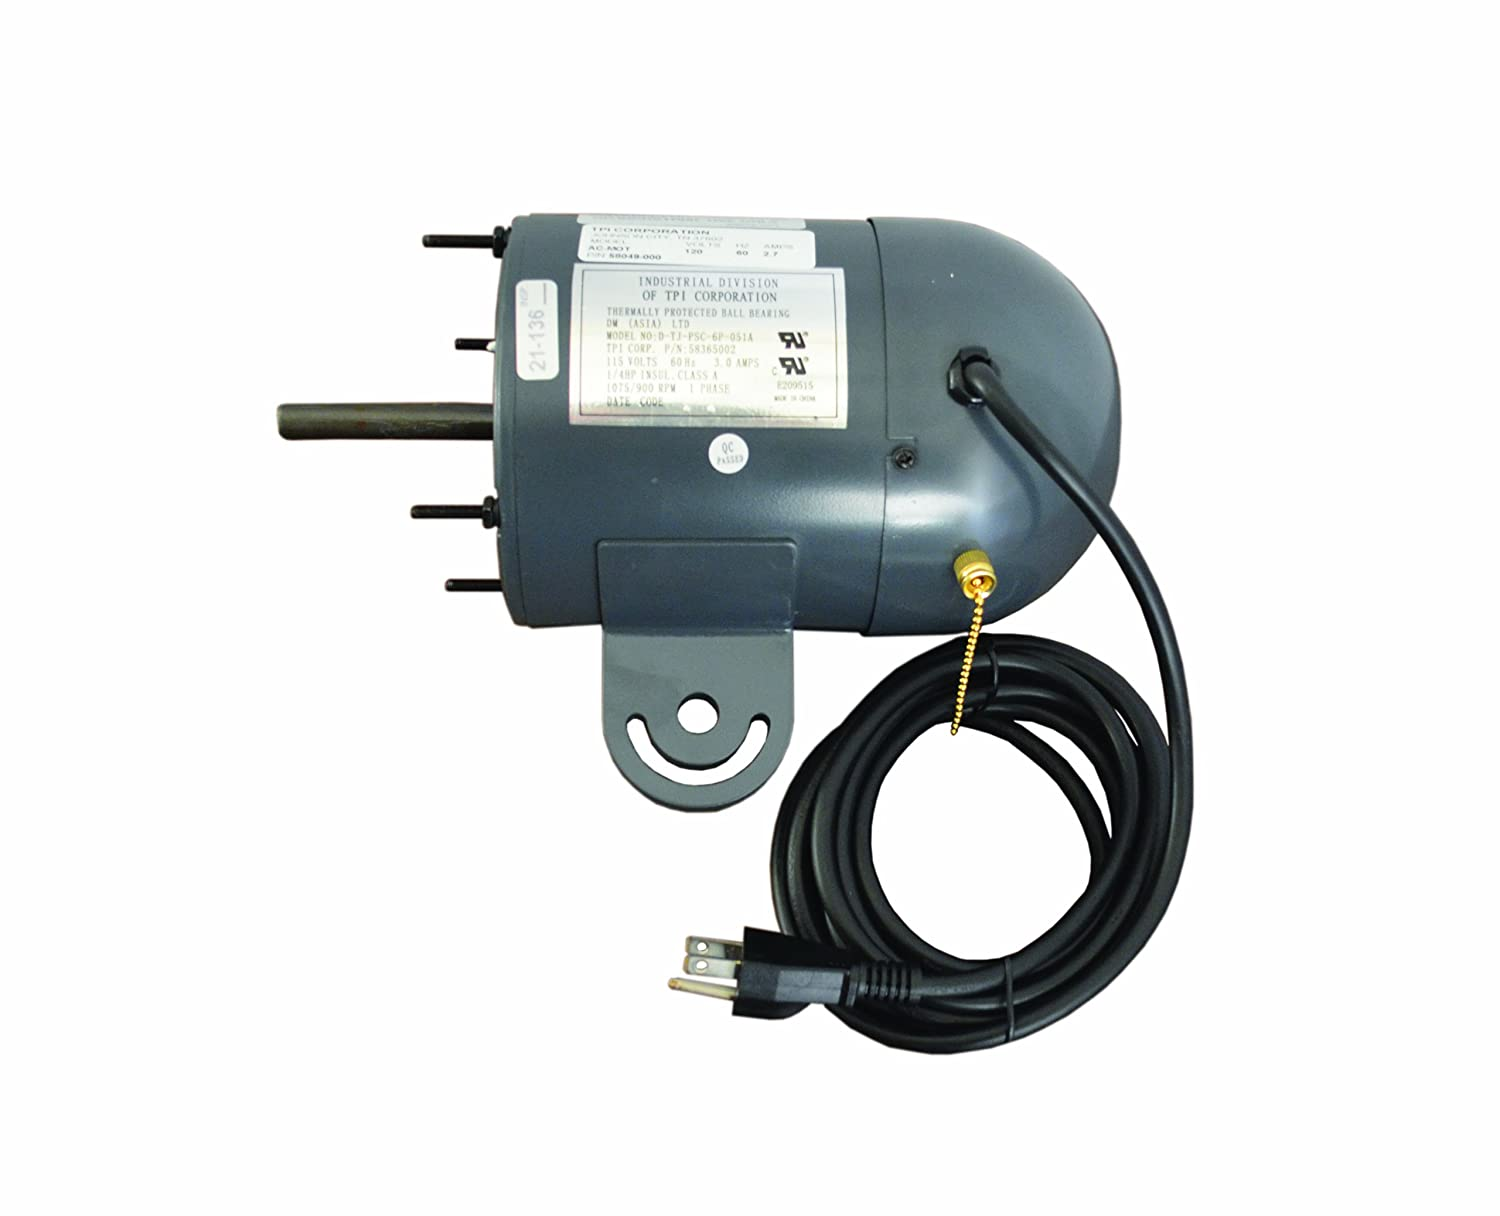 TPI Corporation AC-MOT Industrial Motor for Circulators, Single Phase, 120 Volt